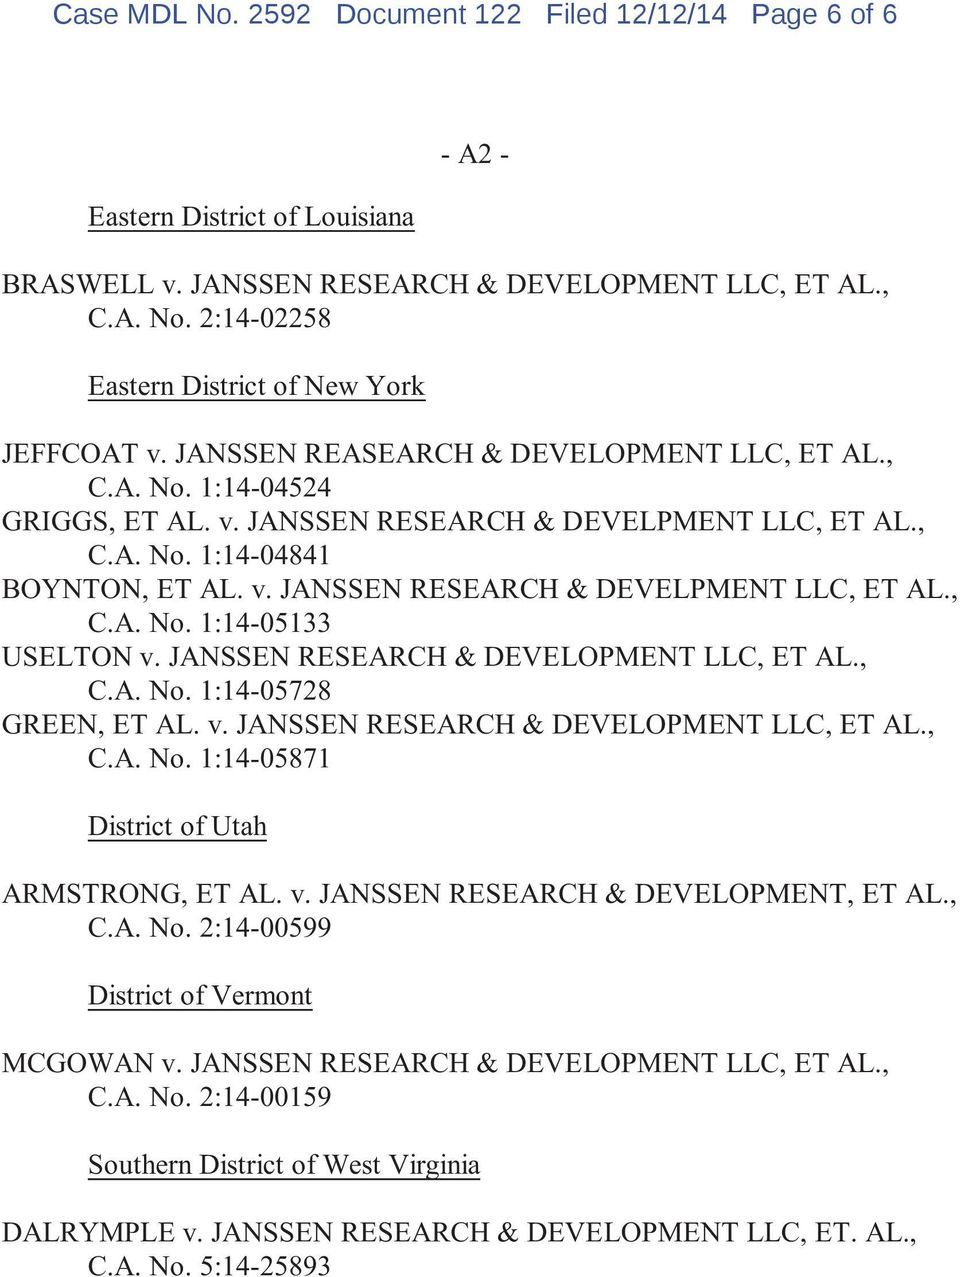 JANSSEN RESEARCH & DEVELOPMENT LLC, ET AL., C.A. No. 1:14-05728 GREEN, ET AL. v. JANSSEN RESEARCH & DEVELOPMENT LLC, ET AL., C.A. No. 1:14-05871 District of Utah ARMSTRONG, ET AL. v. JANSSEN RESEARCH & DEVELOPMENT, ET AL.